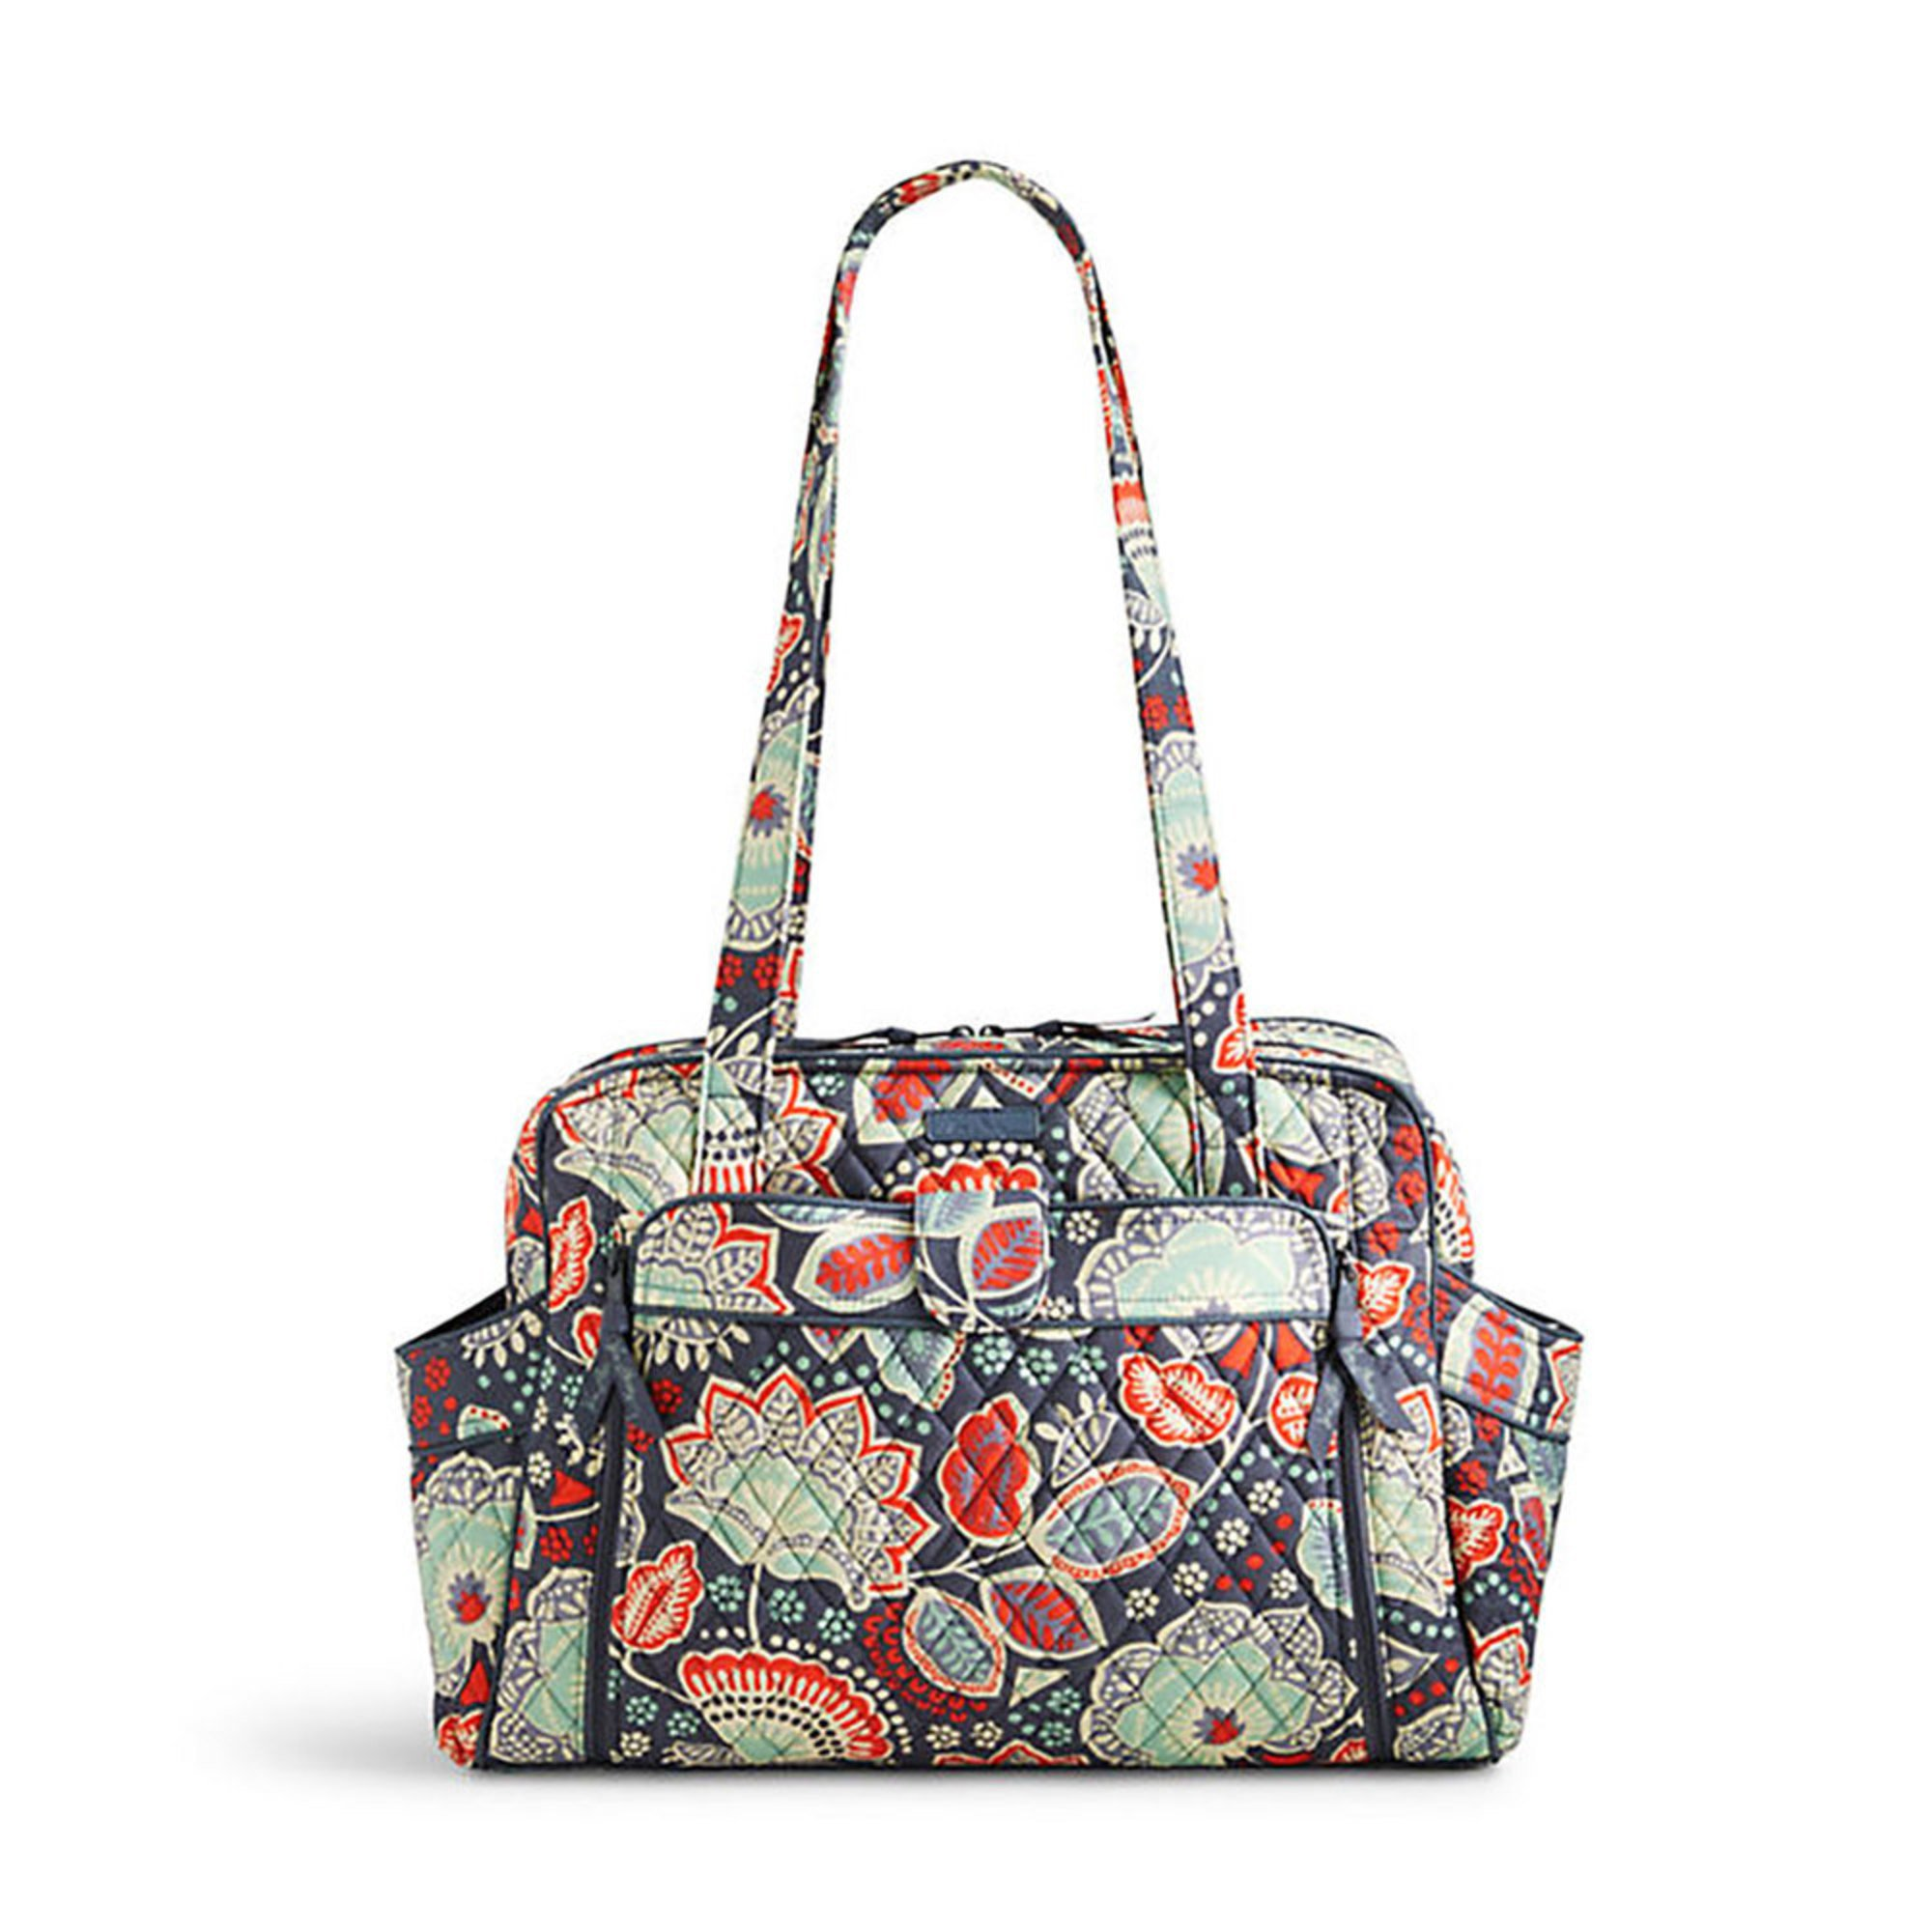 vera bradley stroll around baby bag nomadic floral totes kids shop your navy exchange. Black Bedroom Furniture Sets. Home Design Ideas